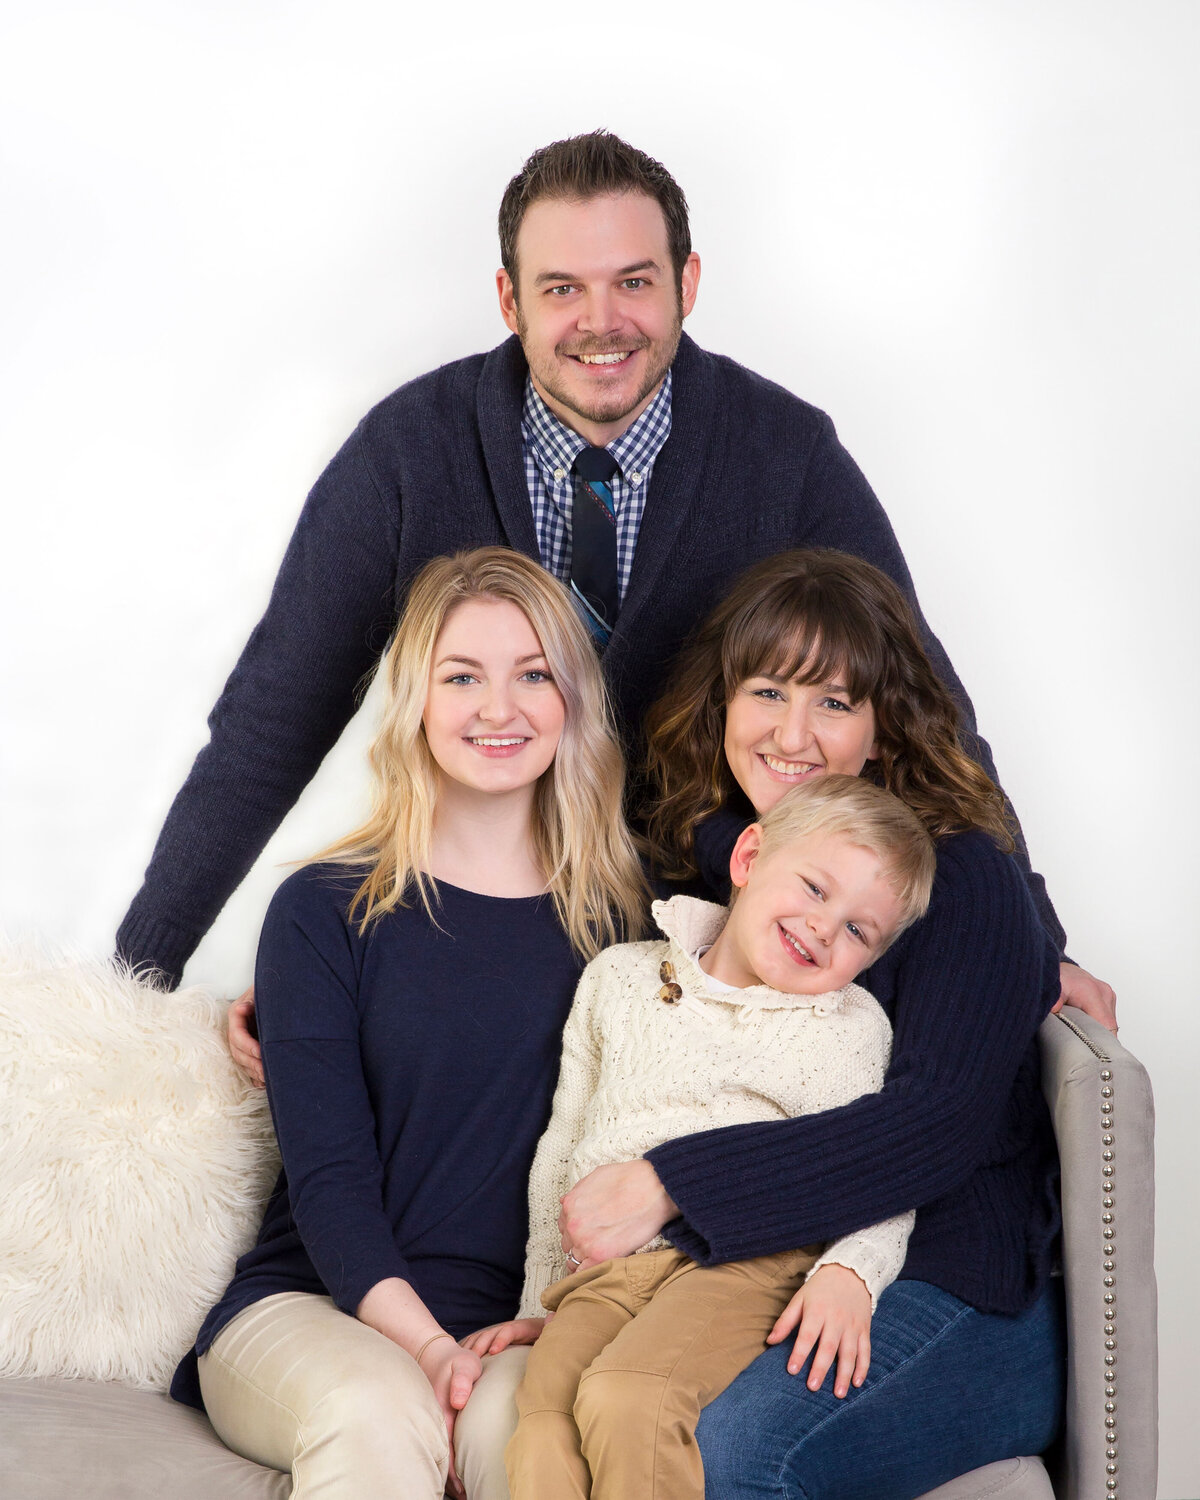 55120 Family photography studio